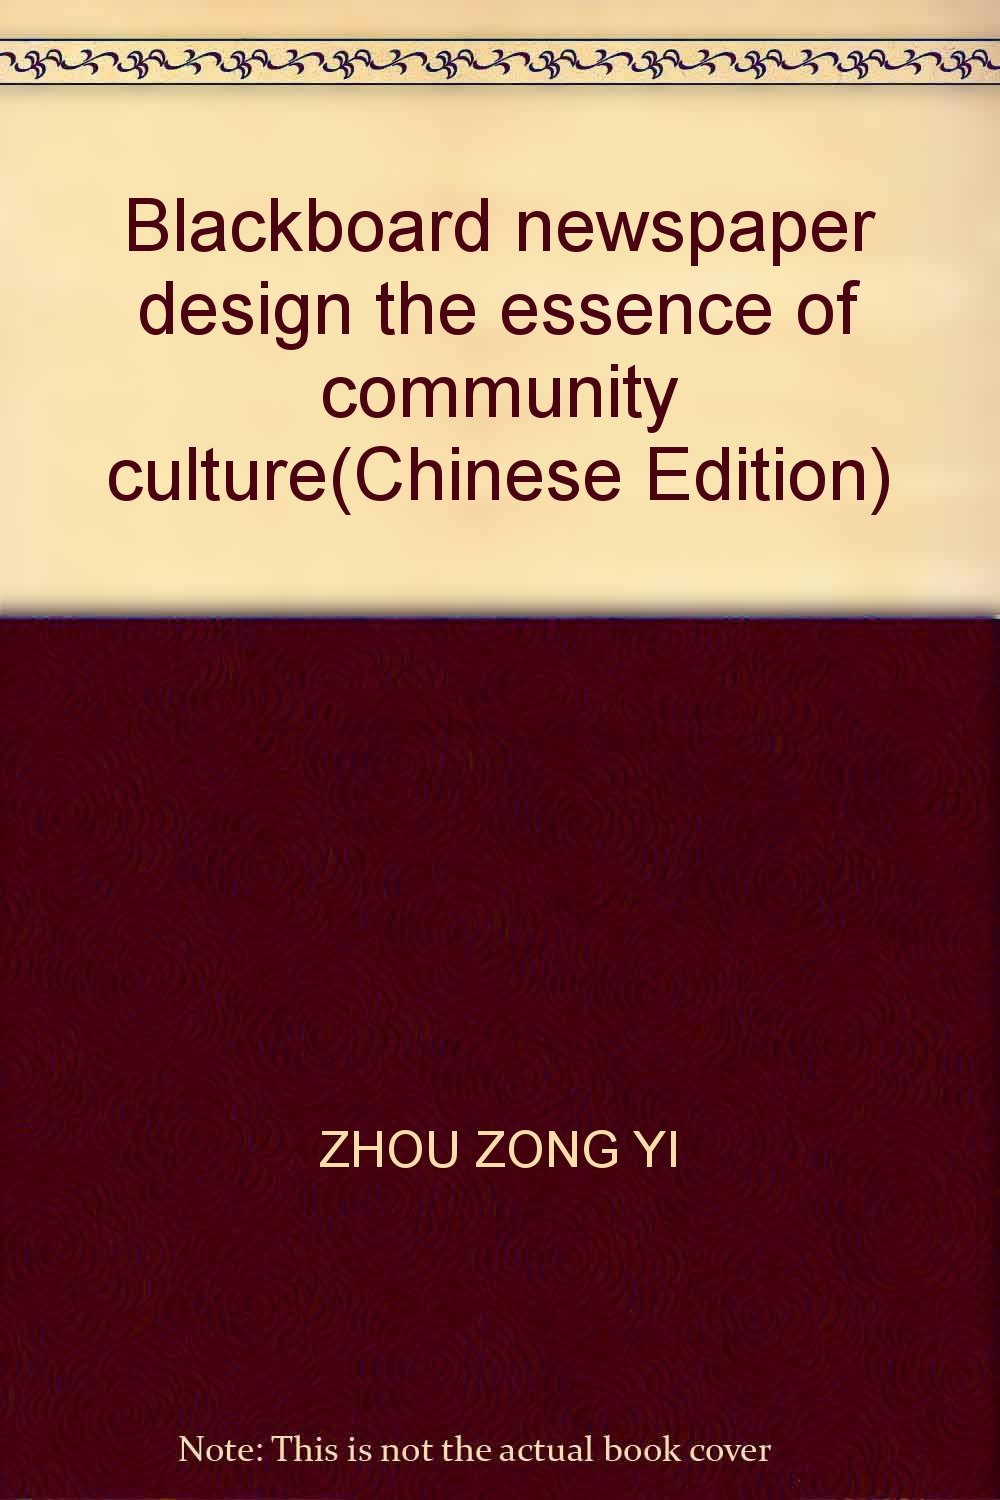 Download Blackboard newspaper design the essence of community culture(Chinese Edition) PDF